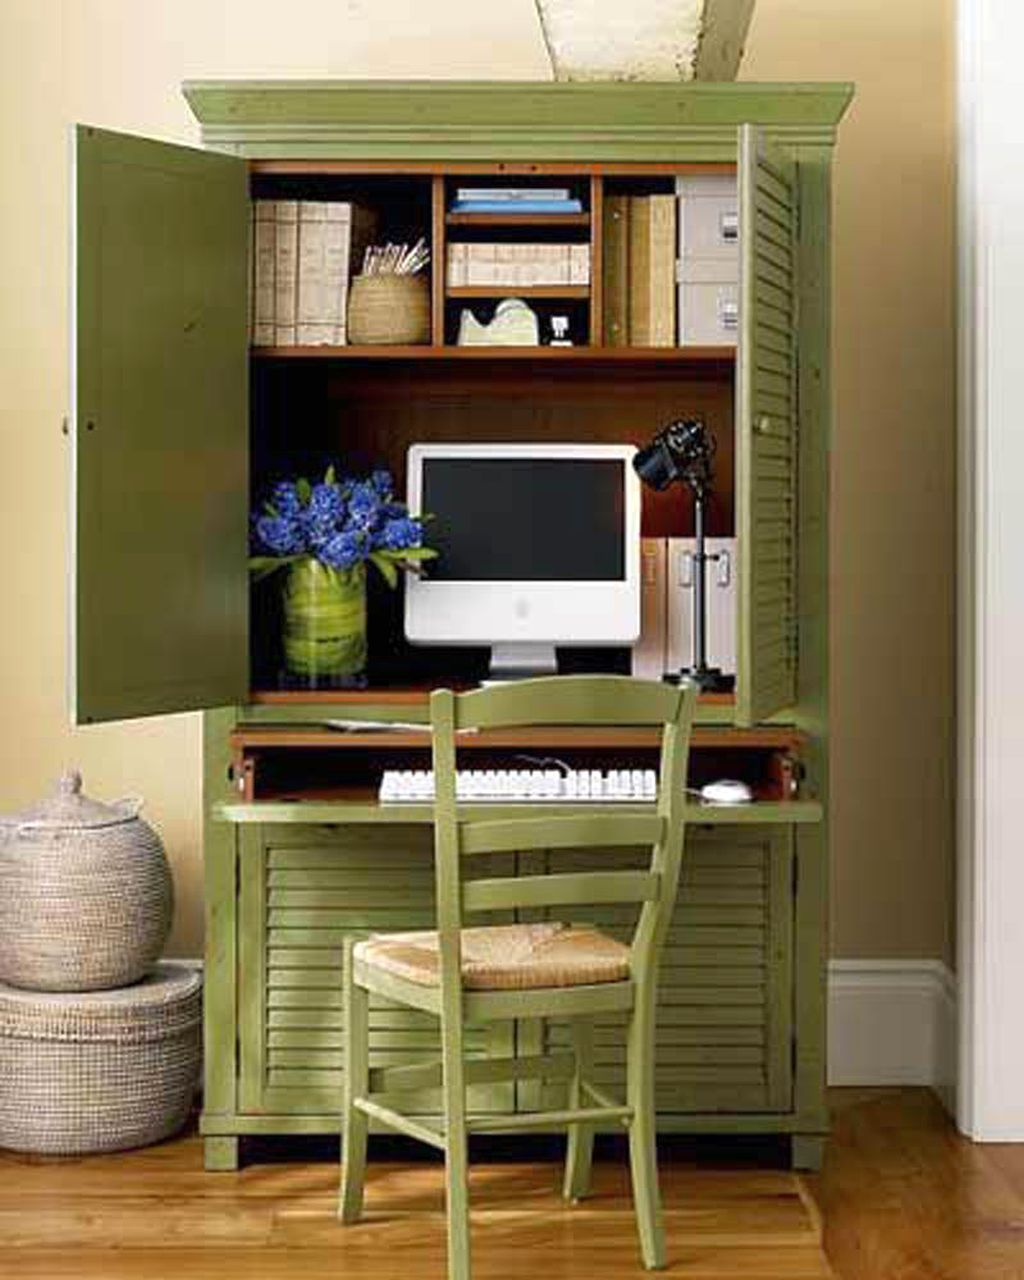 green cupboard home office design ideas for small spaces office designs decorating small living room amazing small space office